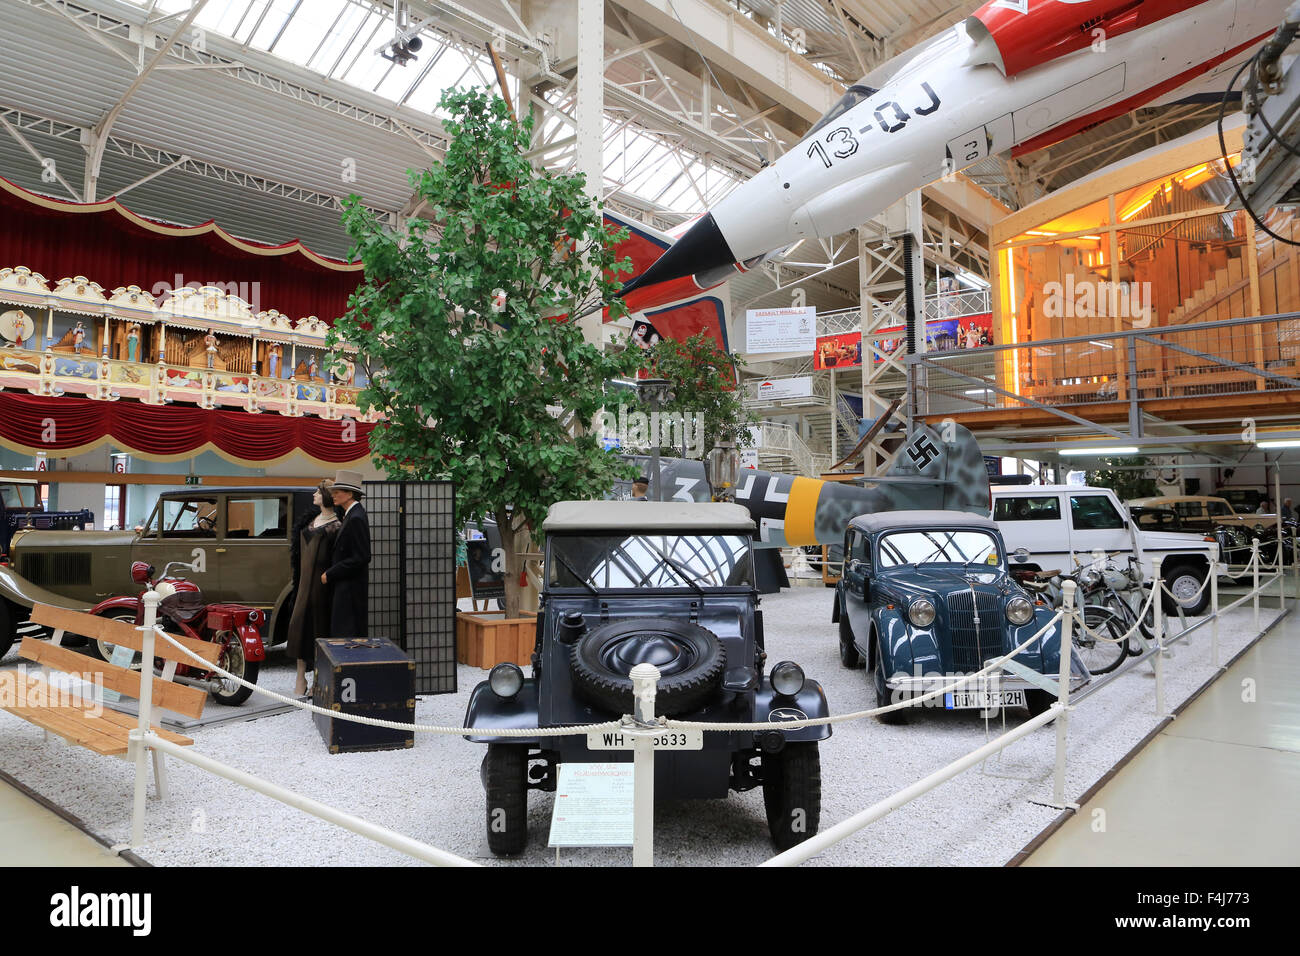 Old cars exhibit, Technik Museum Speyer, Rhineland Palatinate, Germany, Europe - Stock Image